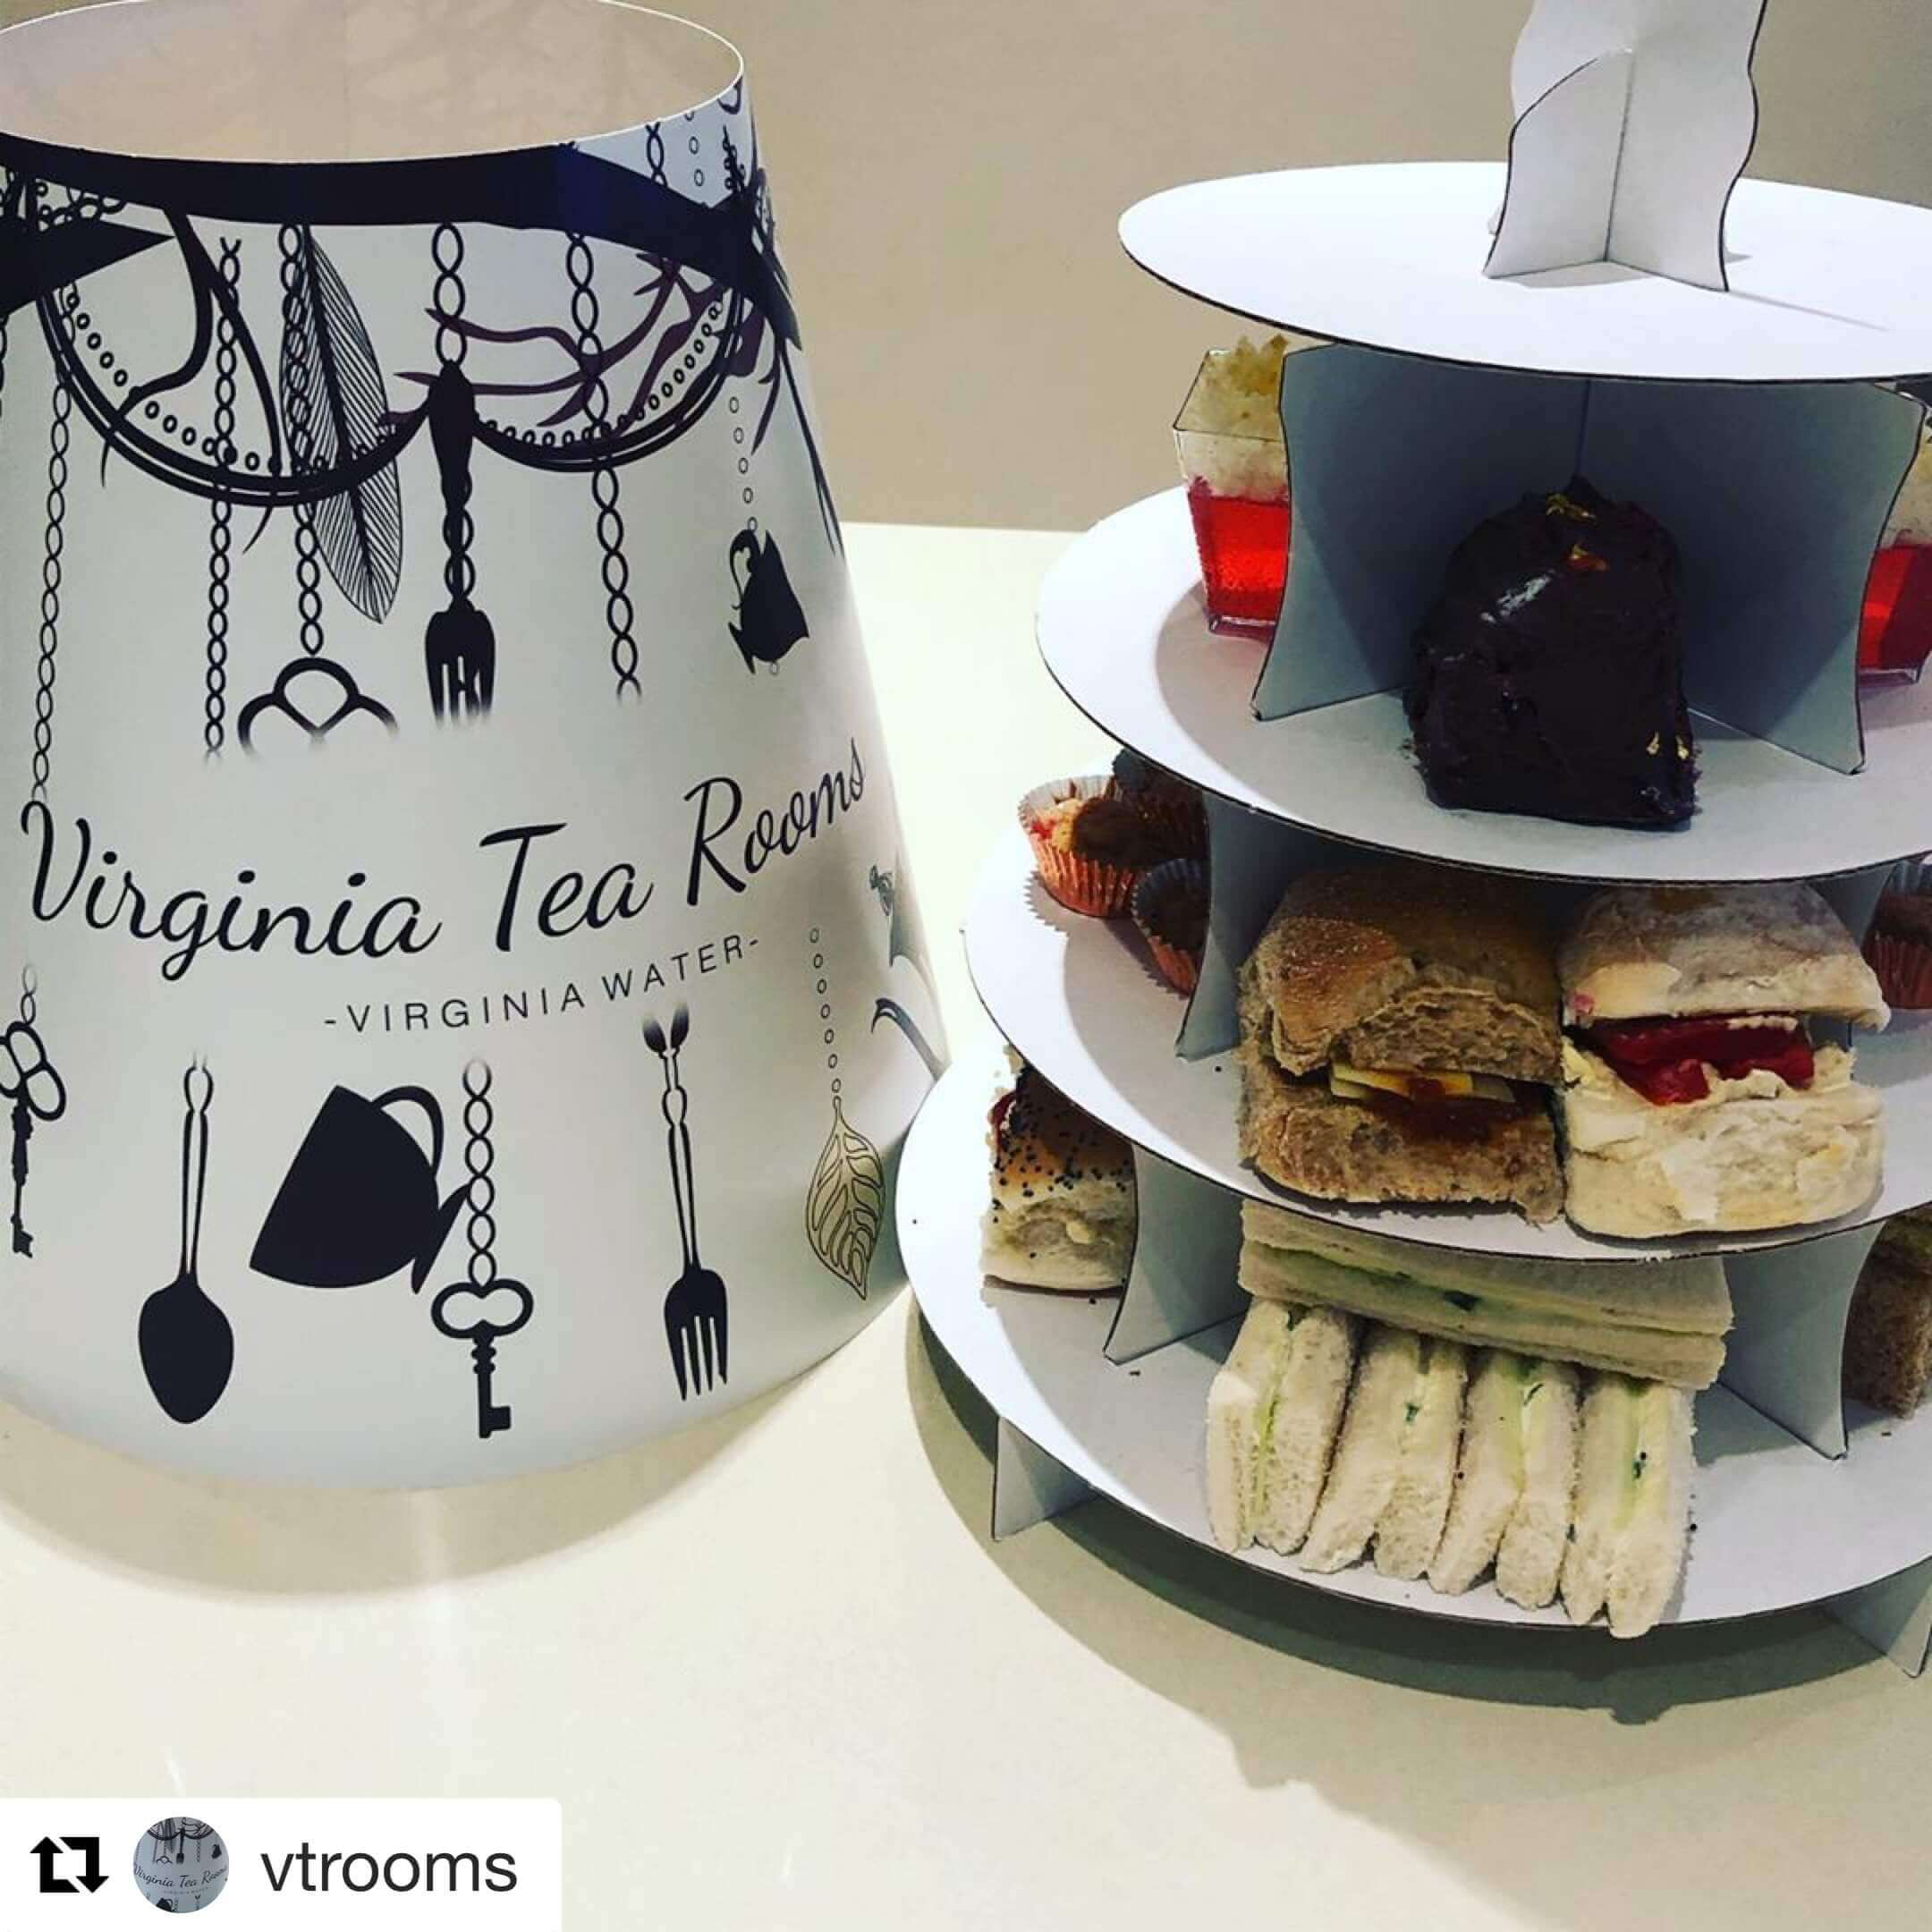 Branded Hood for Afternoon Tea 4 Tier Cake Stand Take Home Caddy